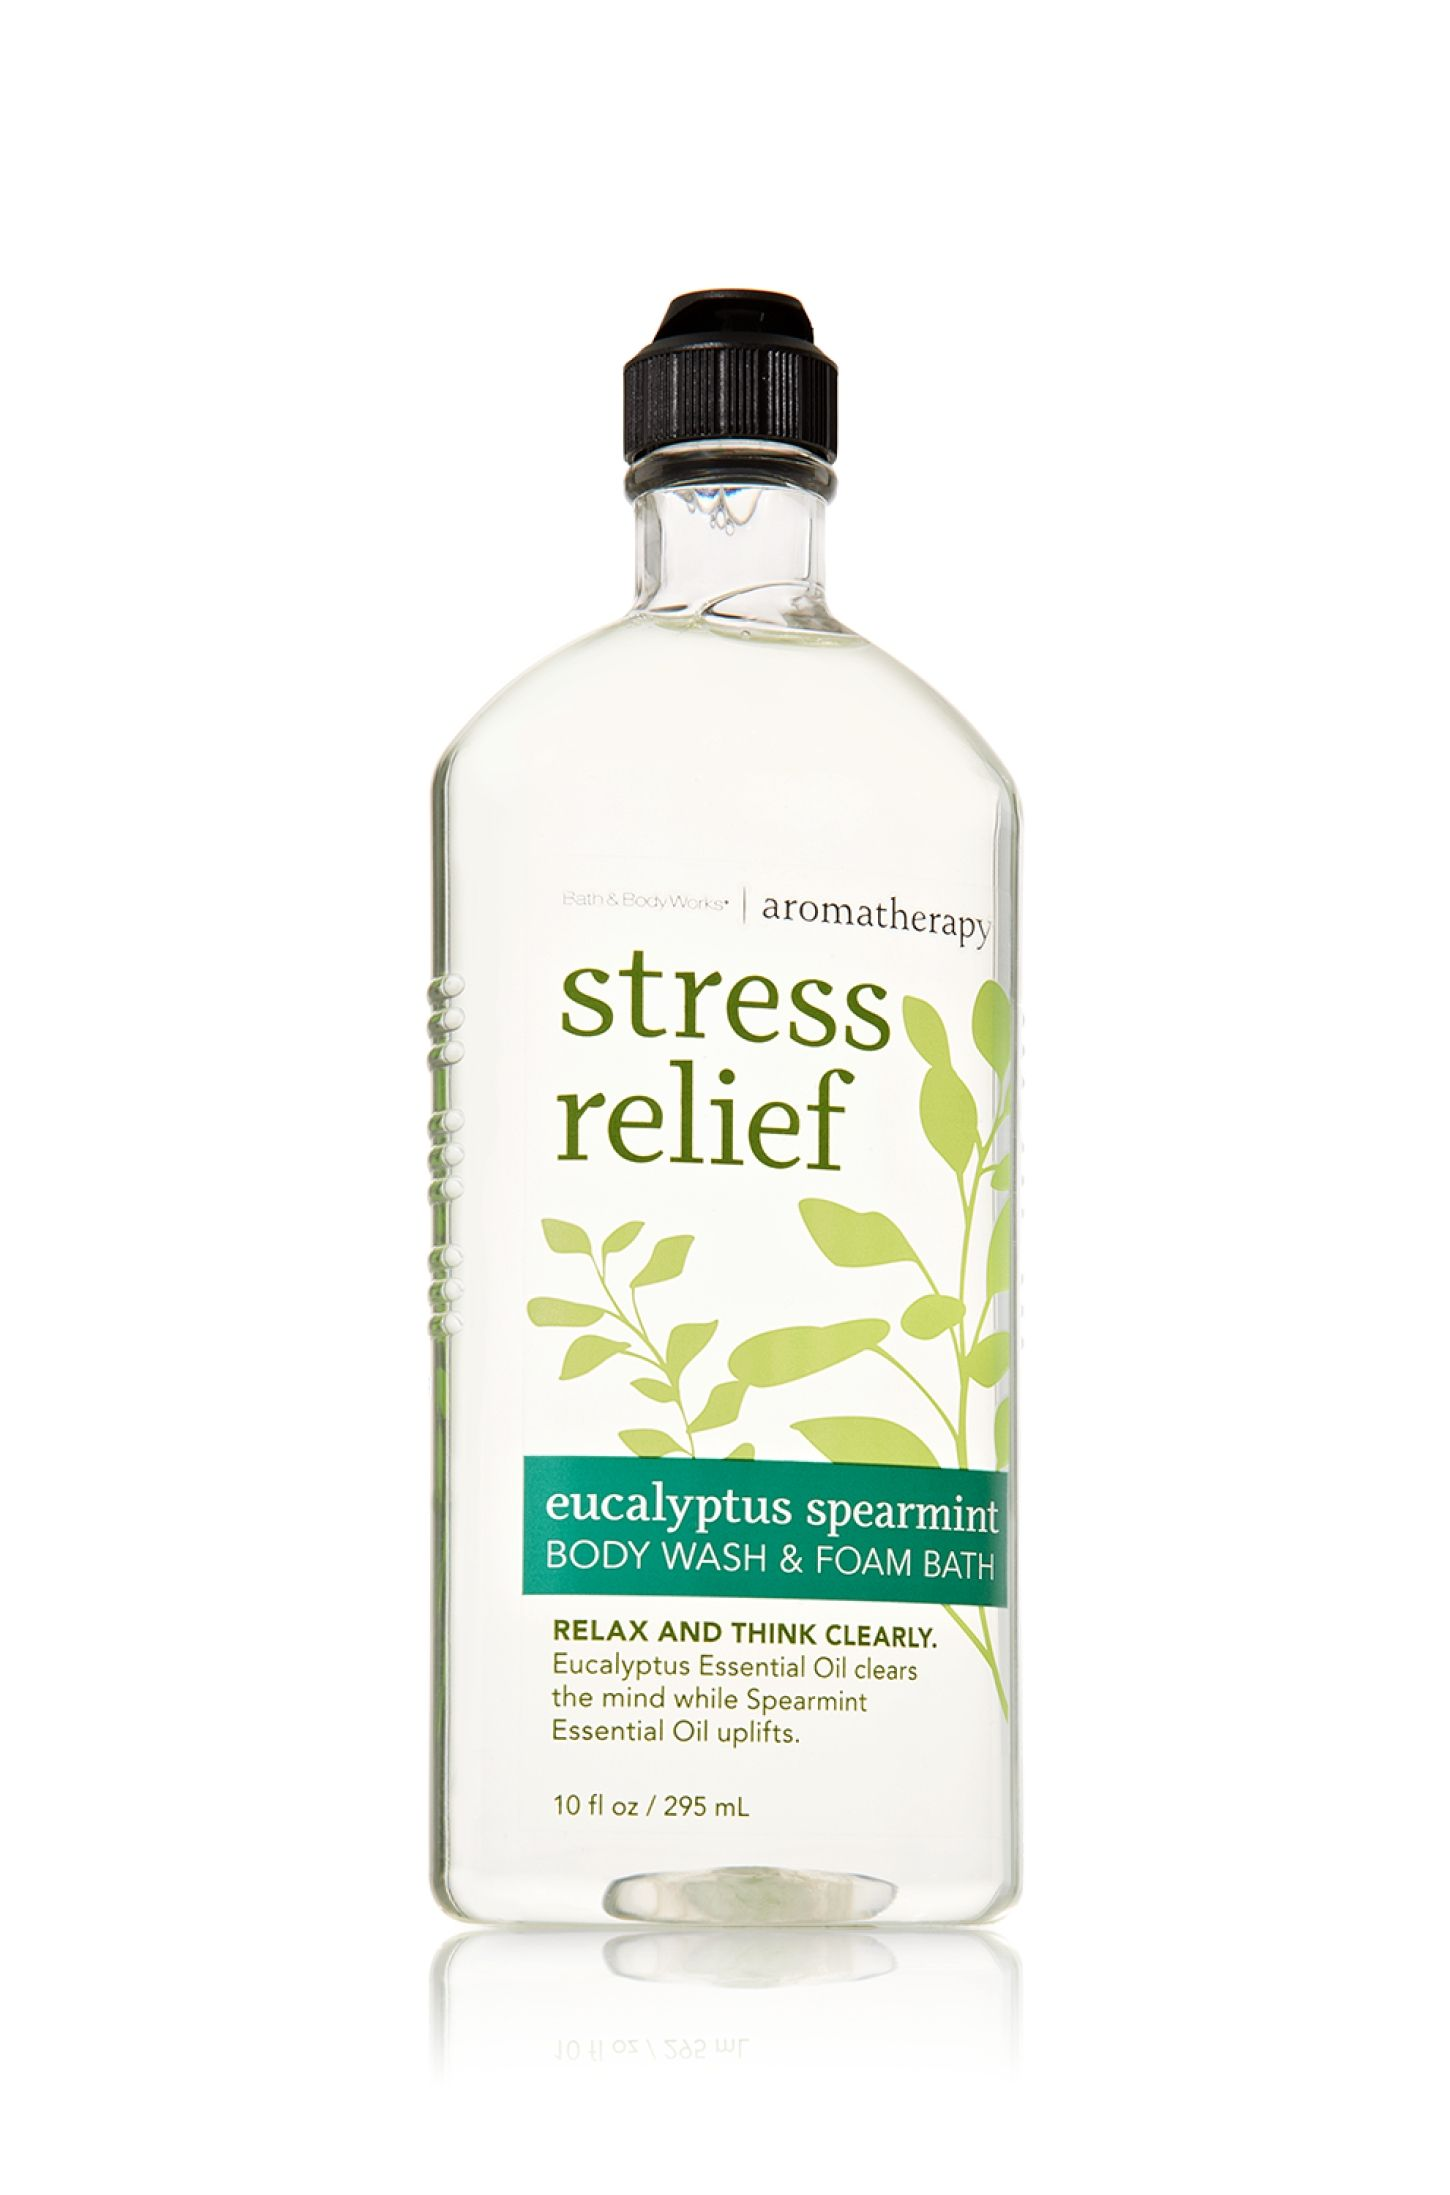 Stress Relief Eucalyptus Spearmint Body Wash Foam Bath